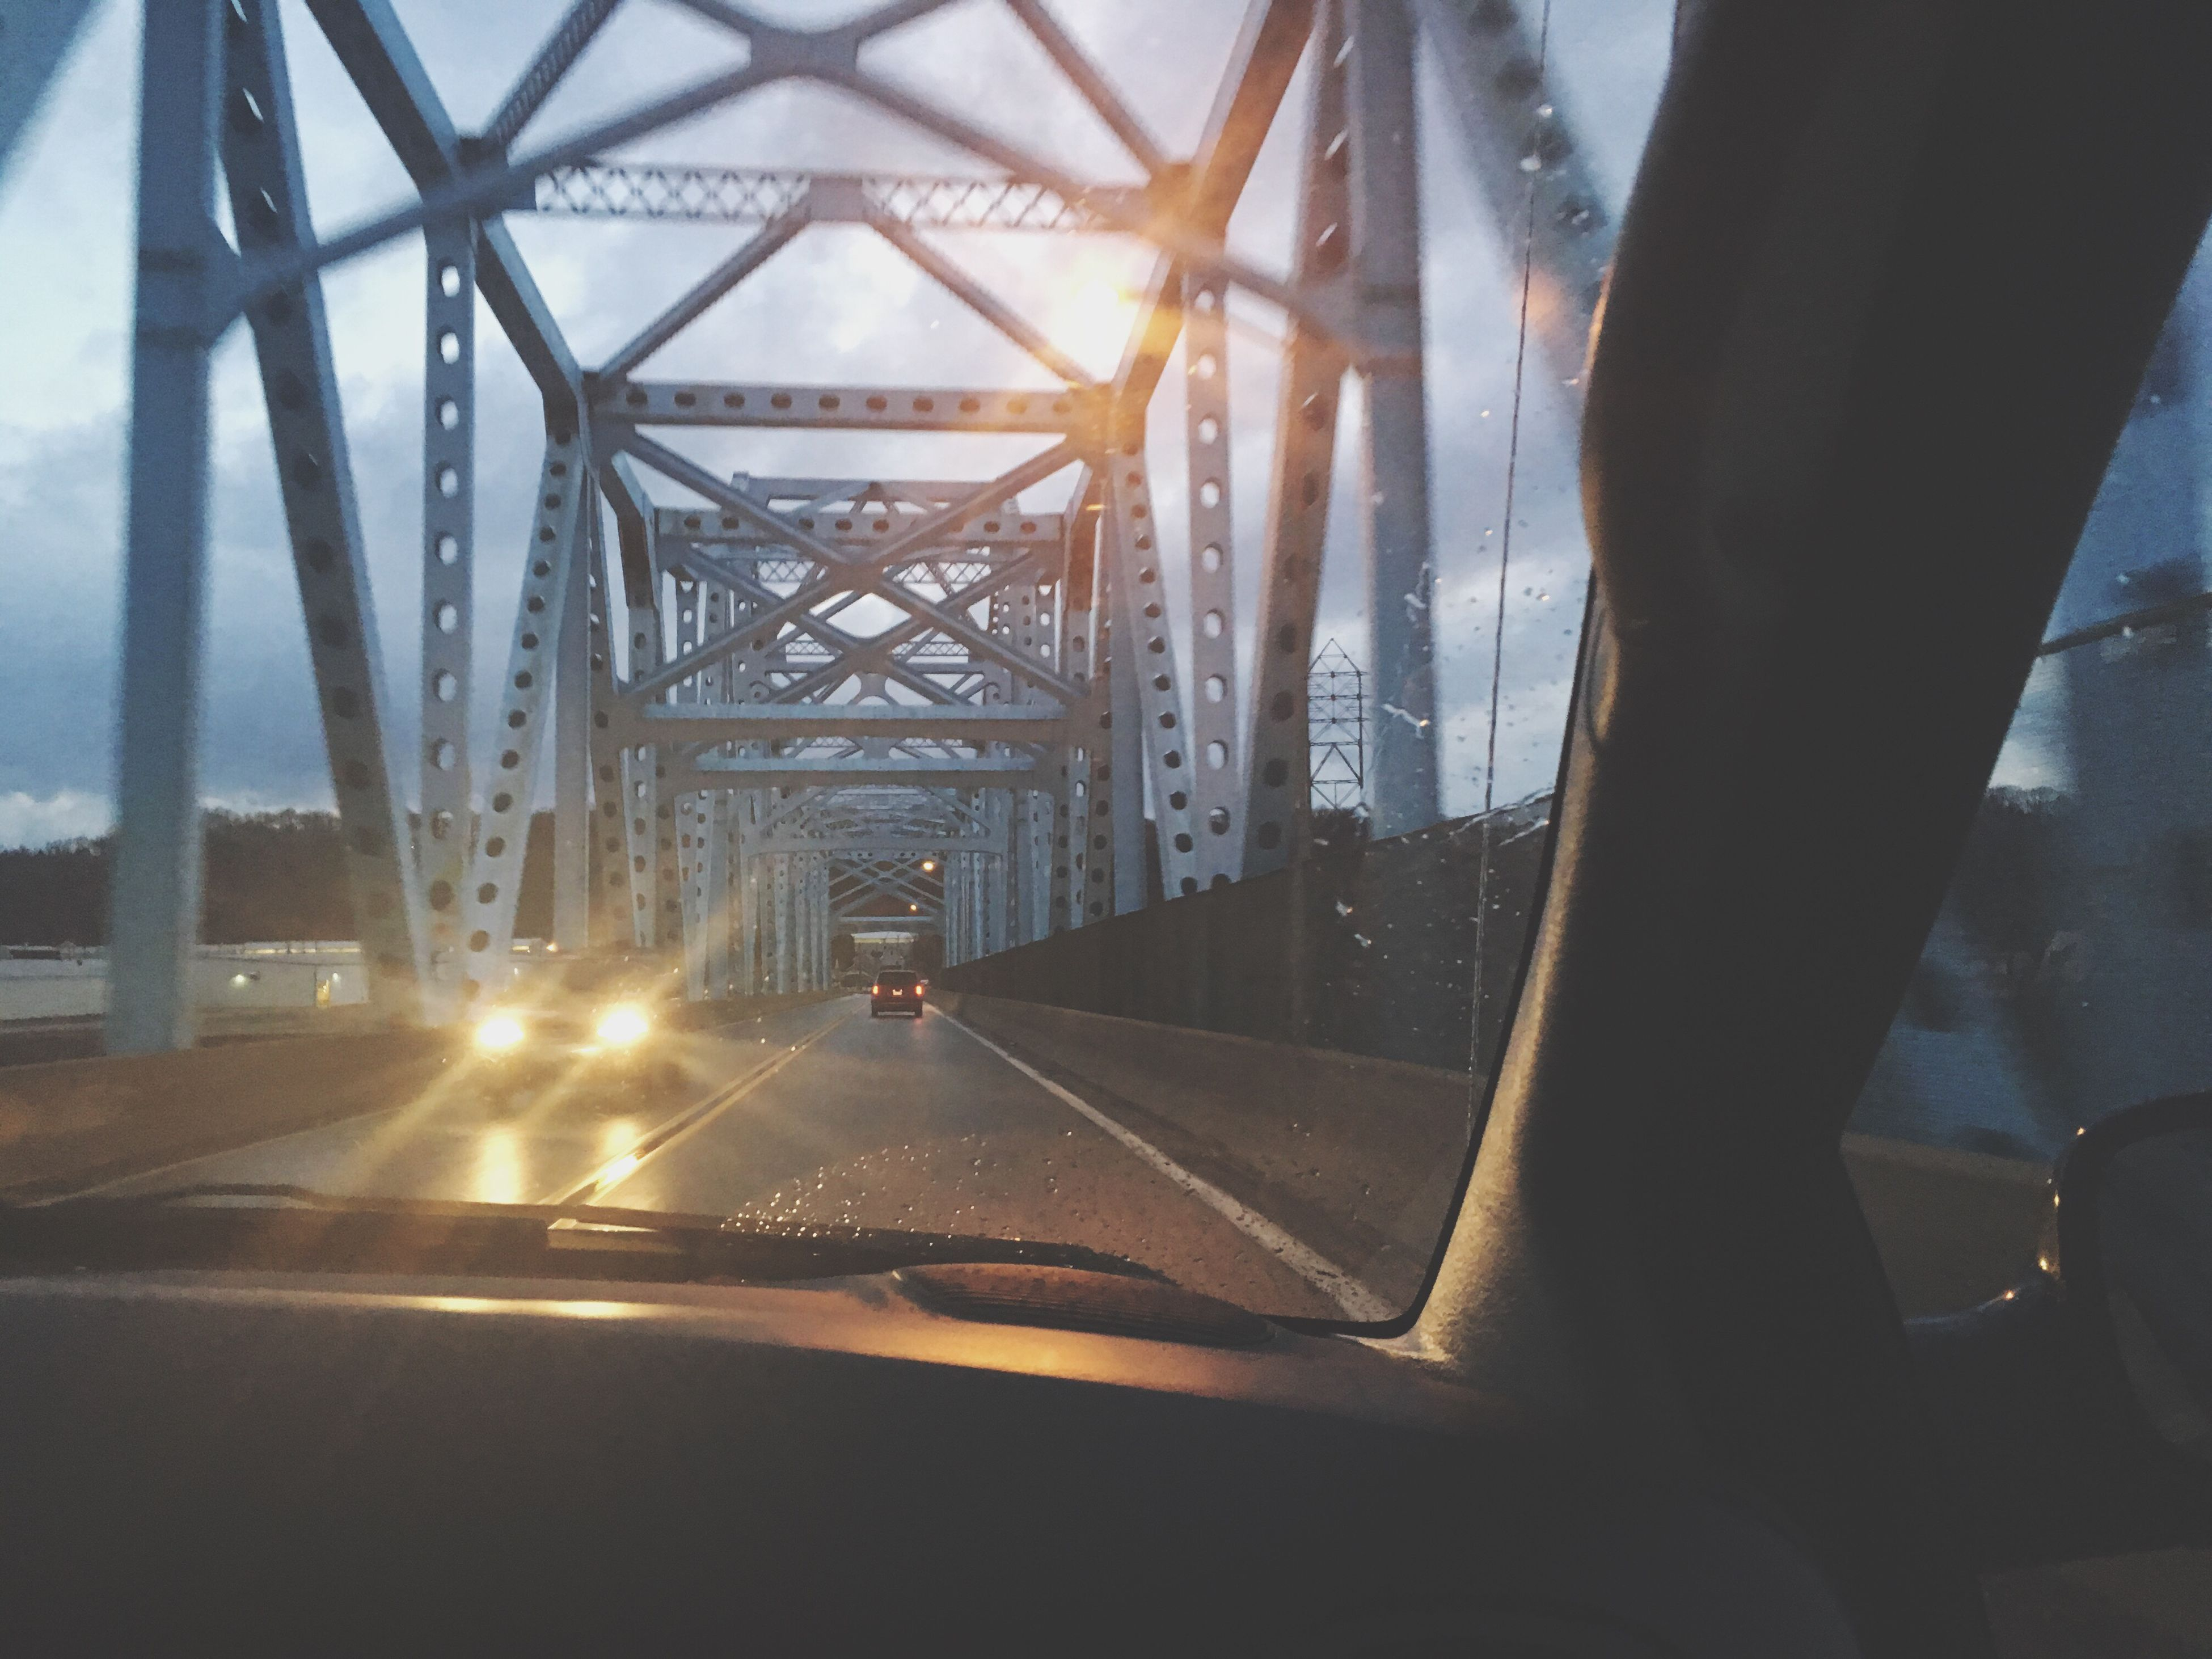 transportation, car, car interior, road, vehicle interior, windshield, land vehicle, driving, mode of transport, human hand, highway, one person, the way forward, real people, bridge - man made structure, architecture, sky, indoors, day, close-up, people